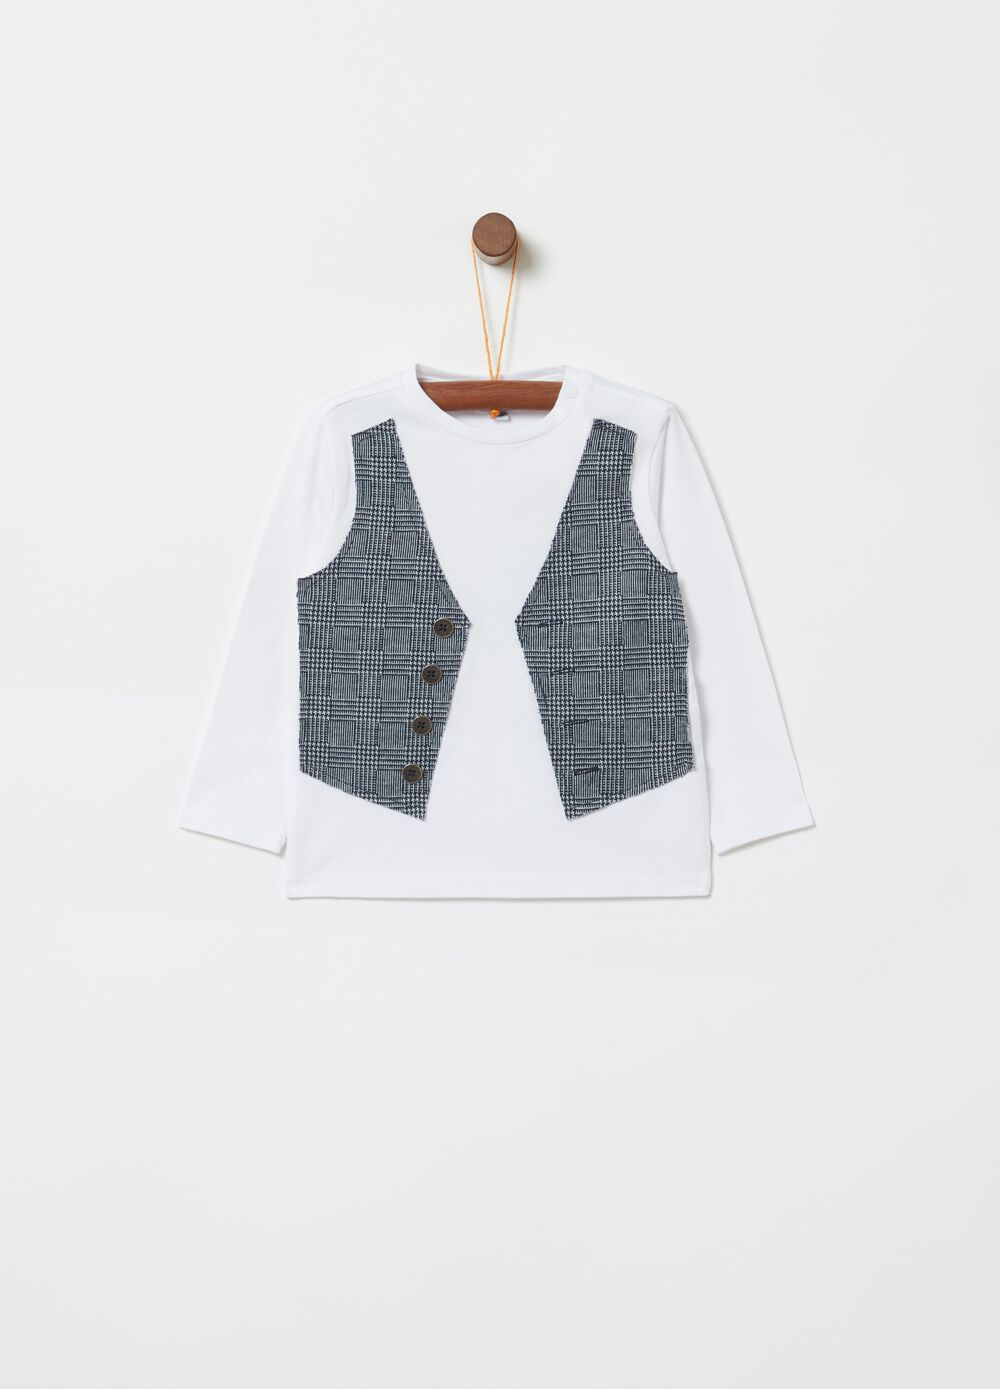 Organic cotton T-shirt with gilet insert